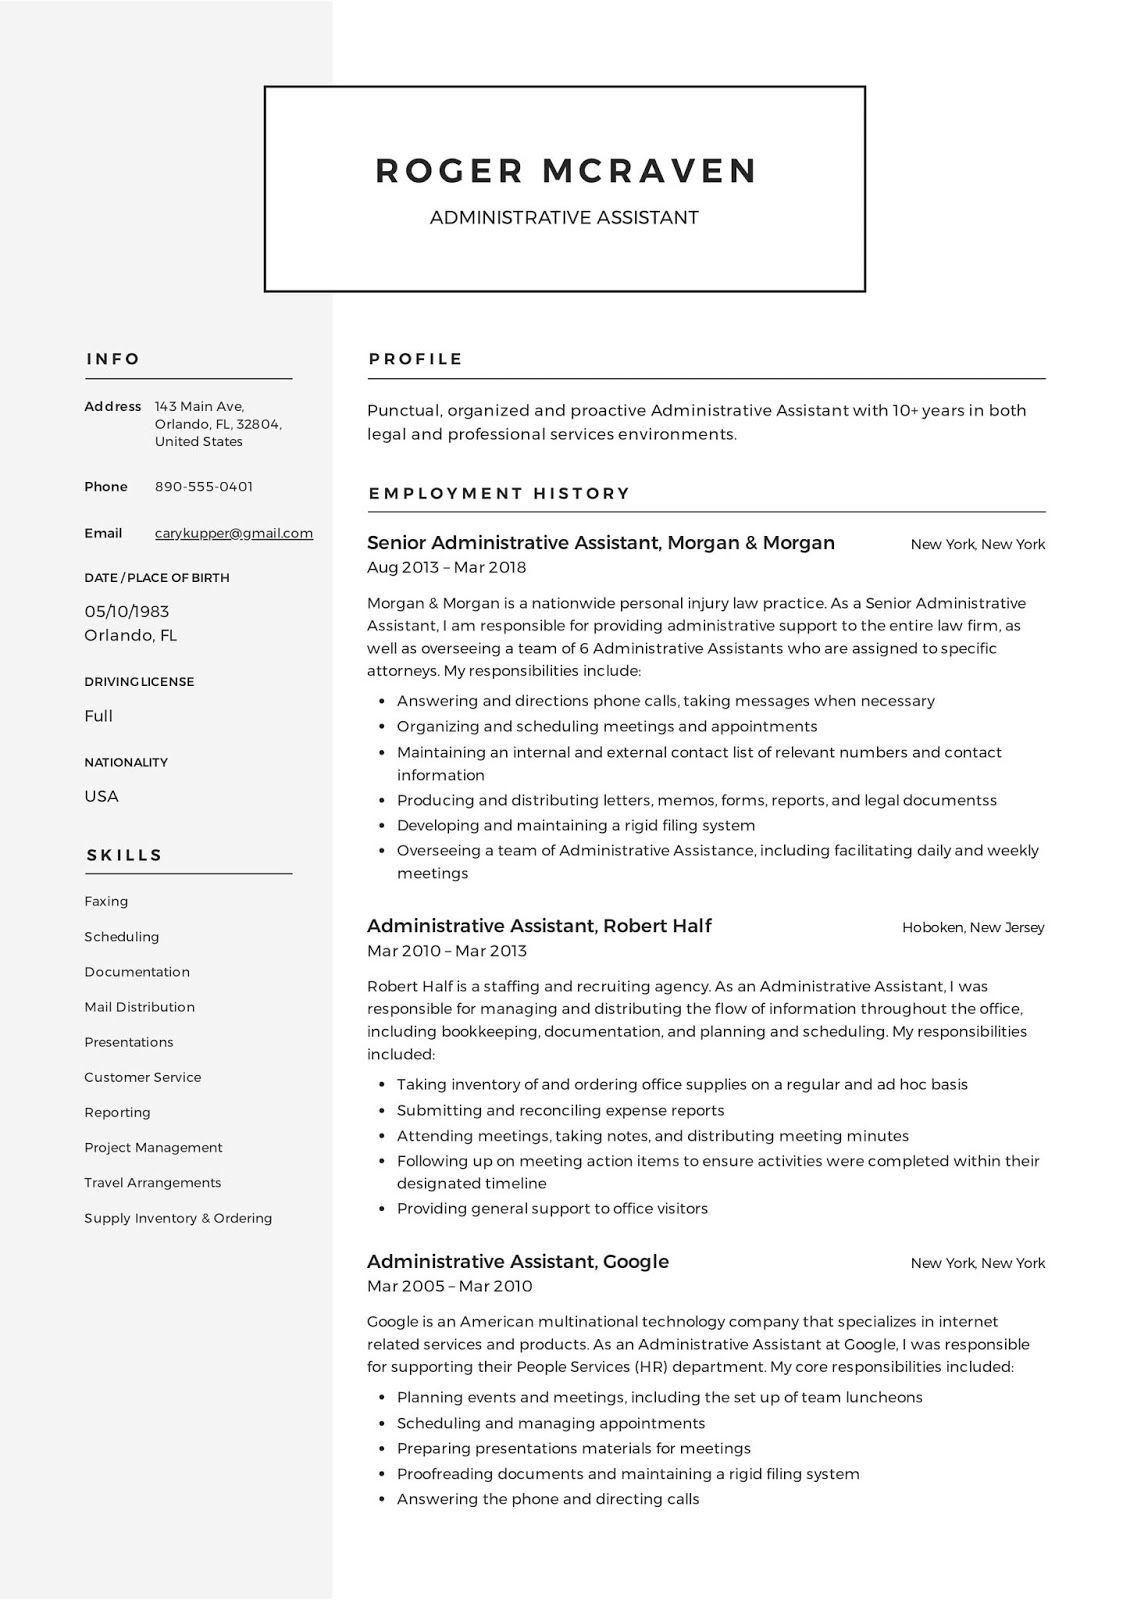 administrative resume template free microsoft word assistant event planner office manager Resume Administrative Assistant Resume 2020